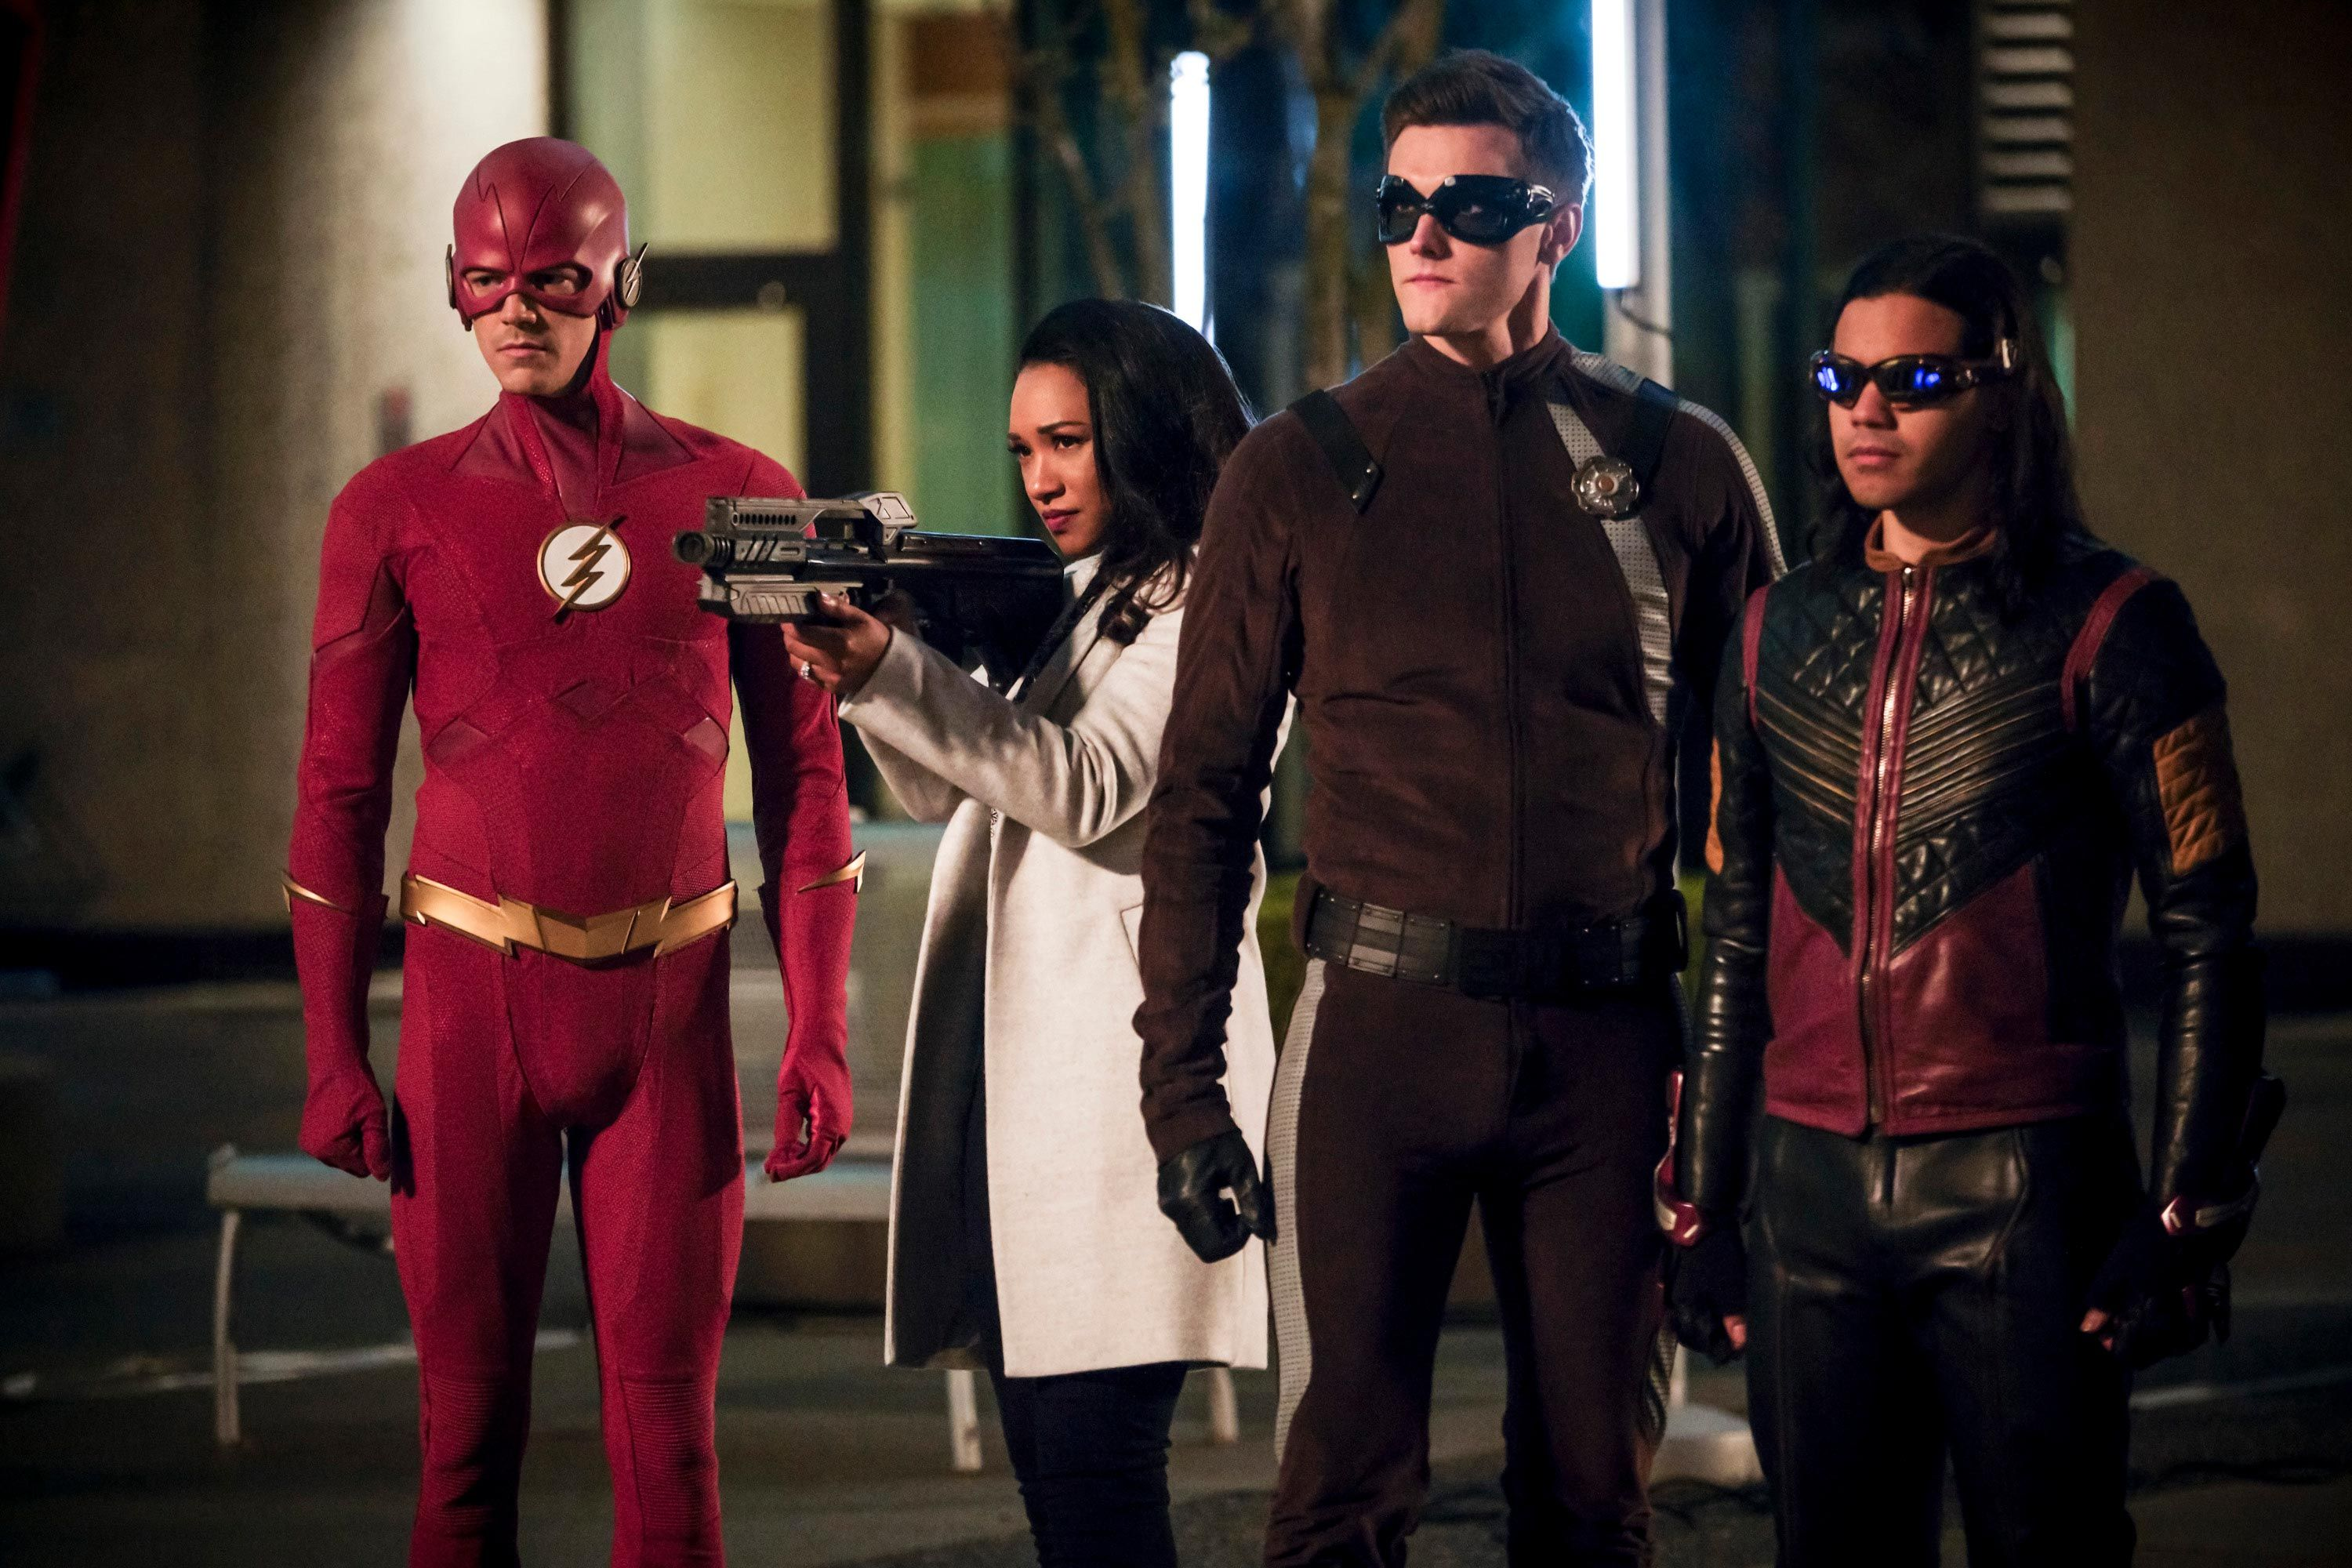 How The Flash season 7 will be changed by Hartley Sawyer's firing